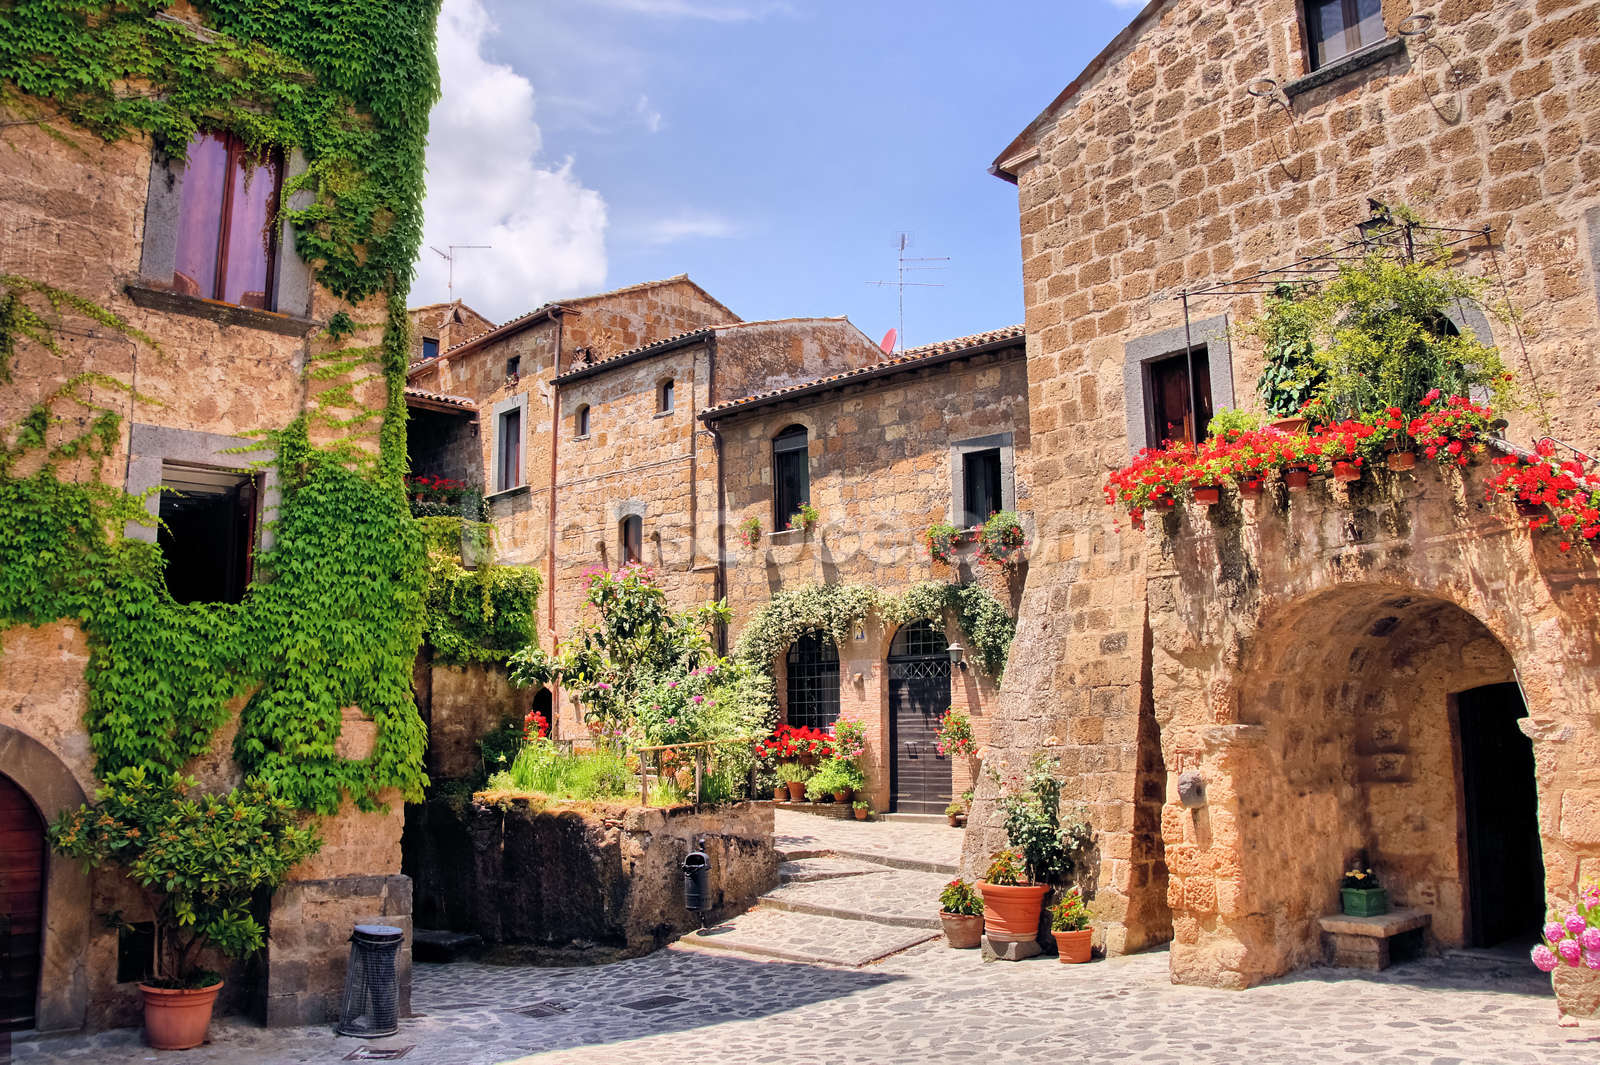 Italian old town wallpaper wall mural wallsauce usa italian old town wall mural photo wallpaper amipublicfo Image collections